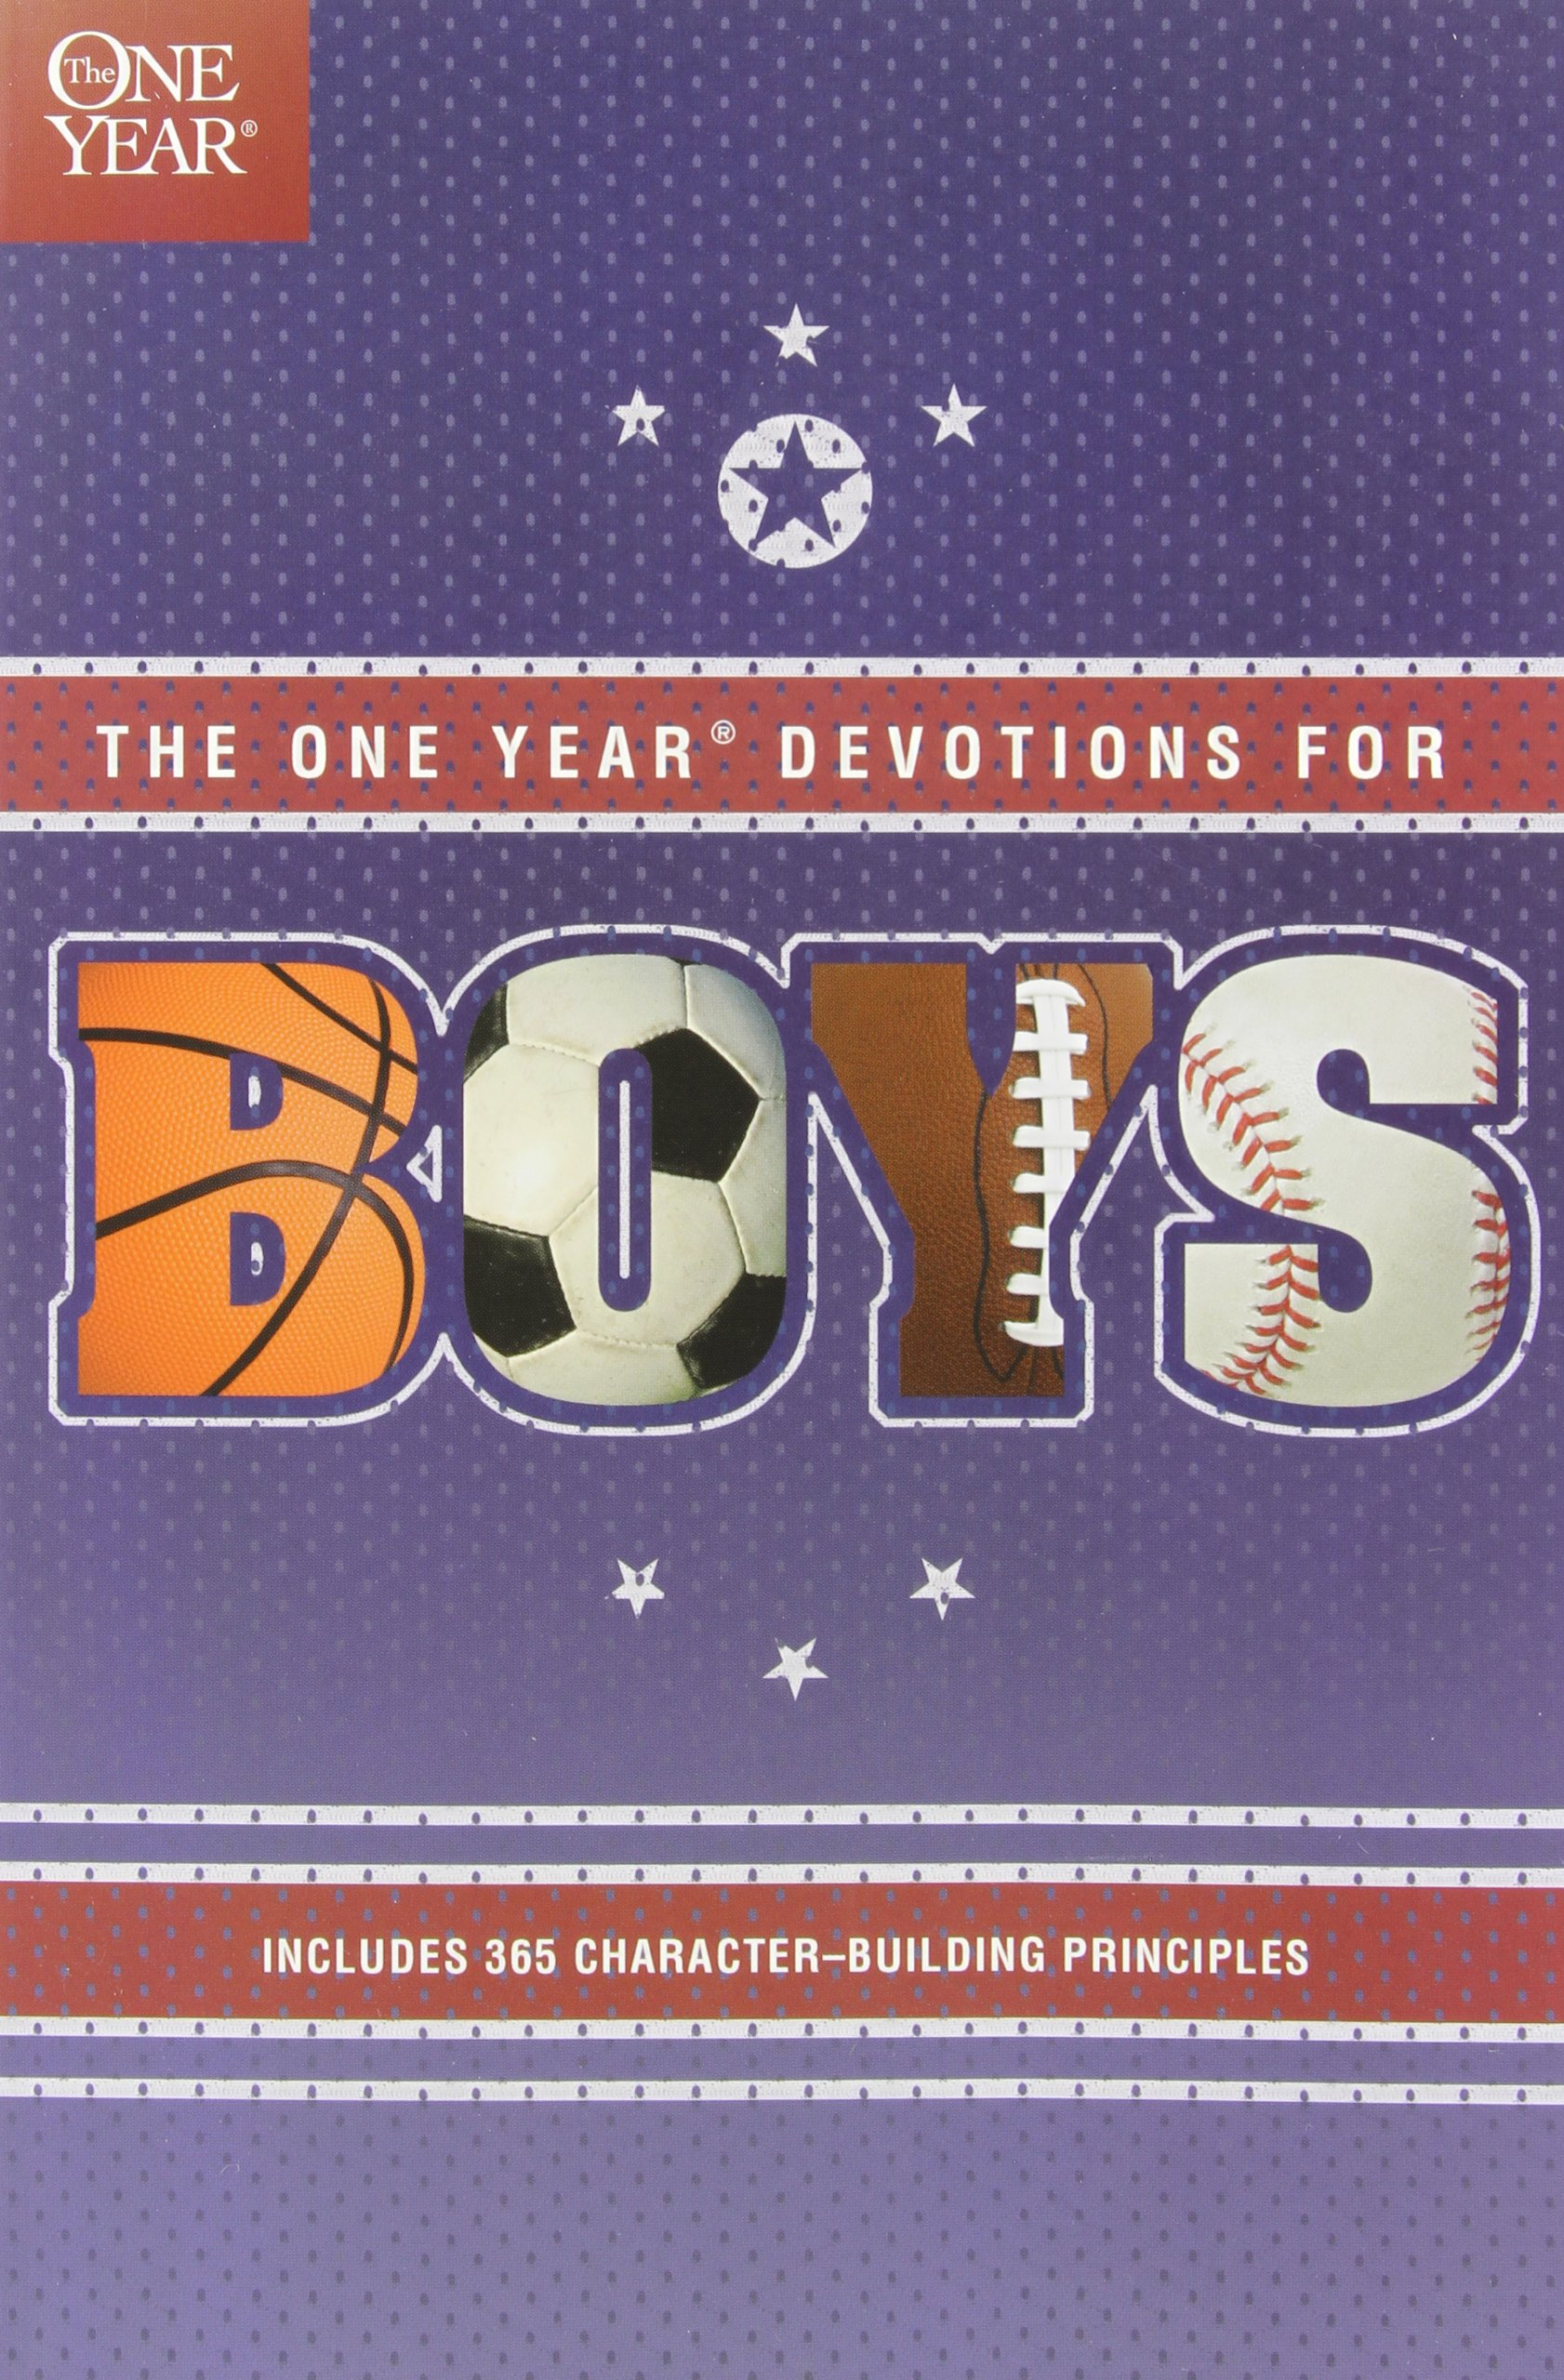 The One Year Book of Devotions for Boys: Tyndale, Children's Bible Hour:  9780842336208: Amazon.com: Books